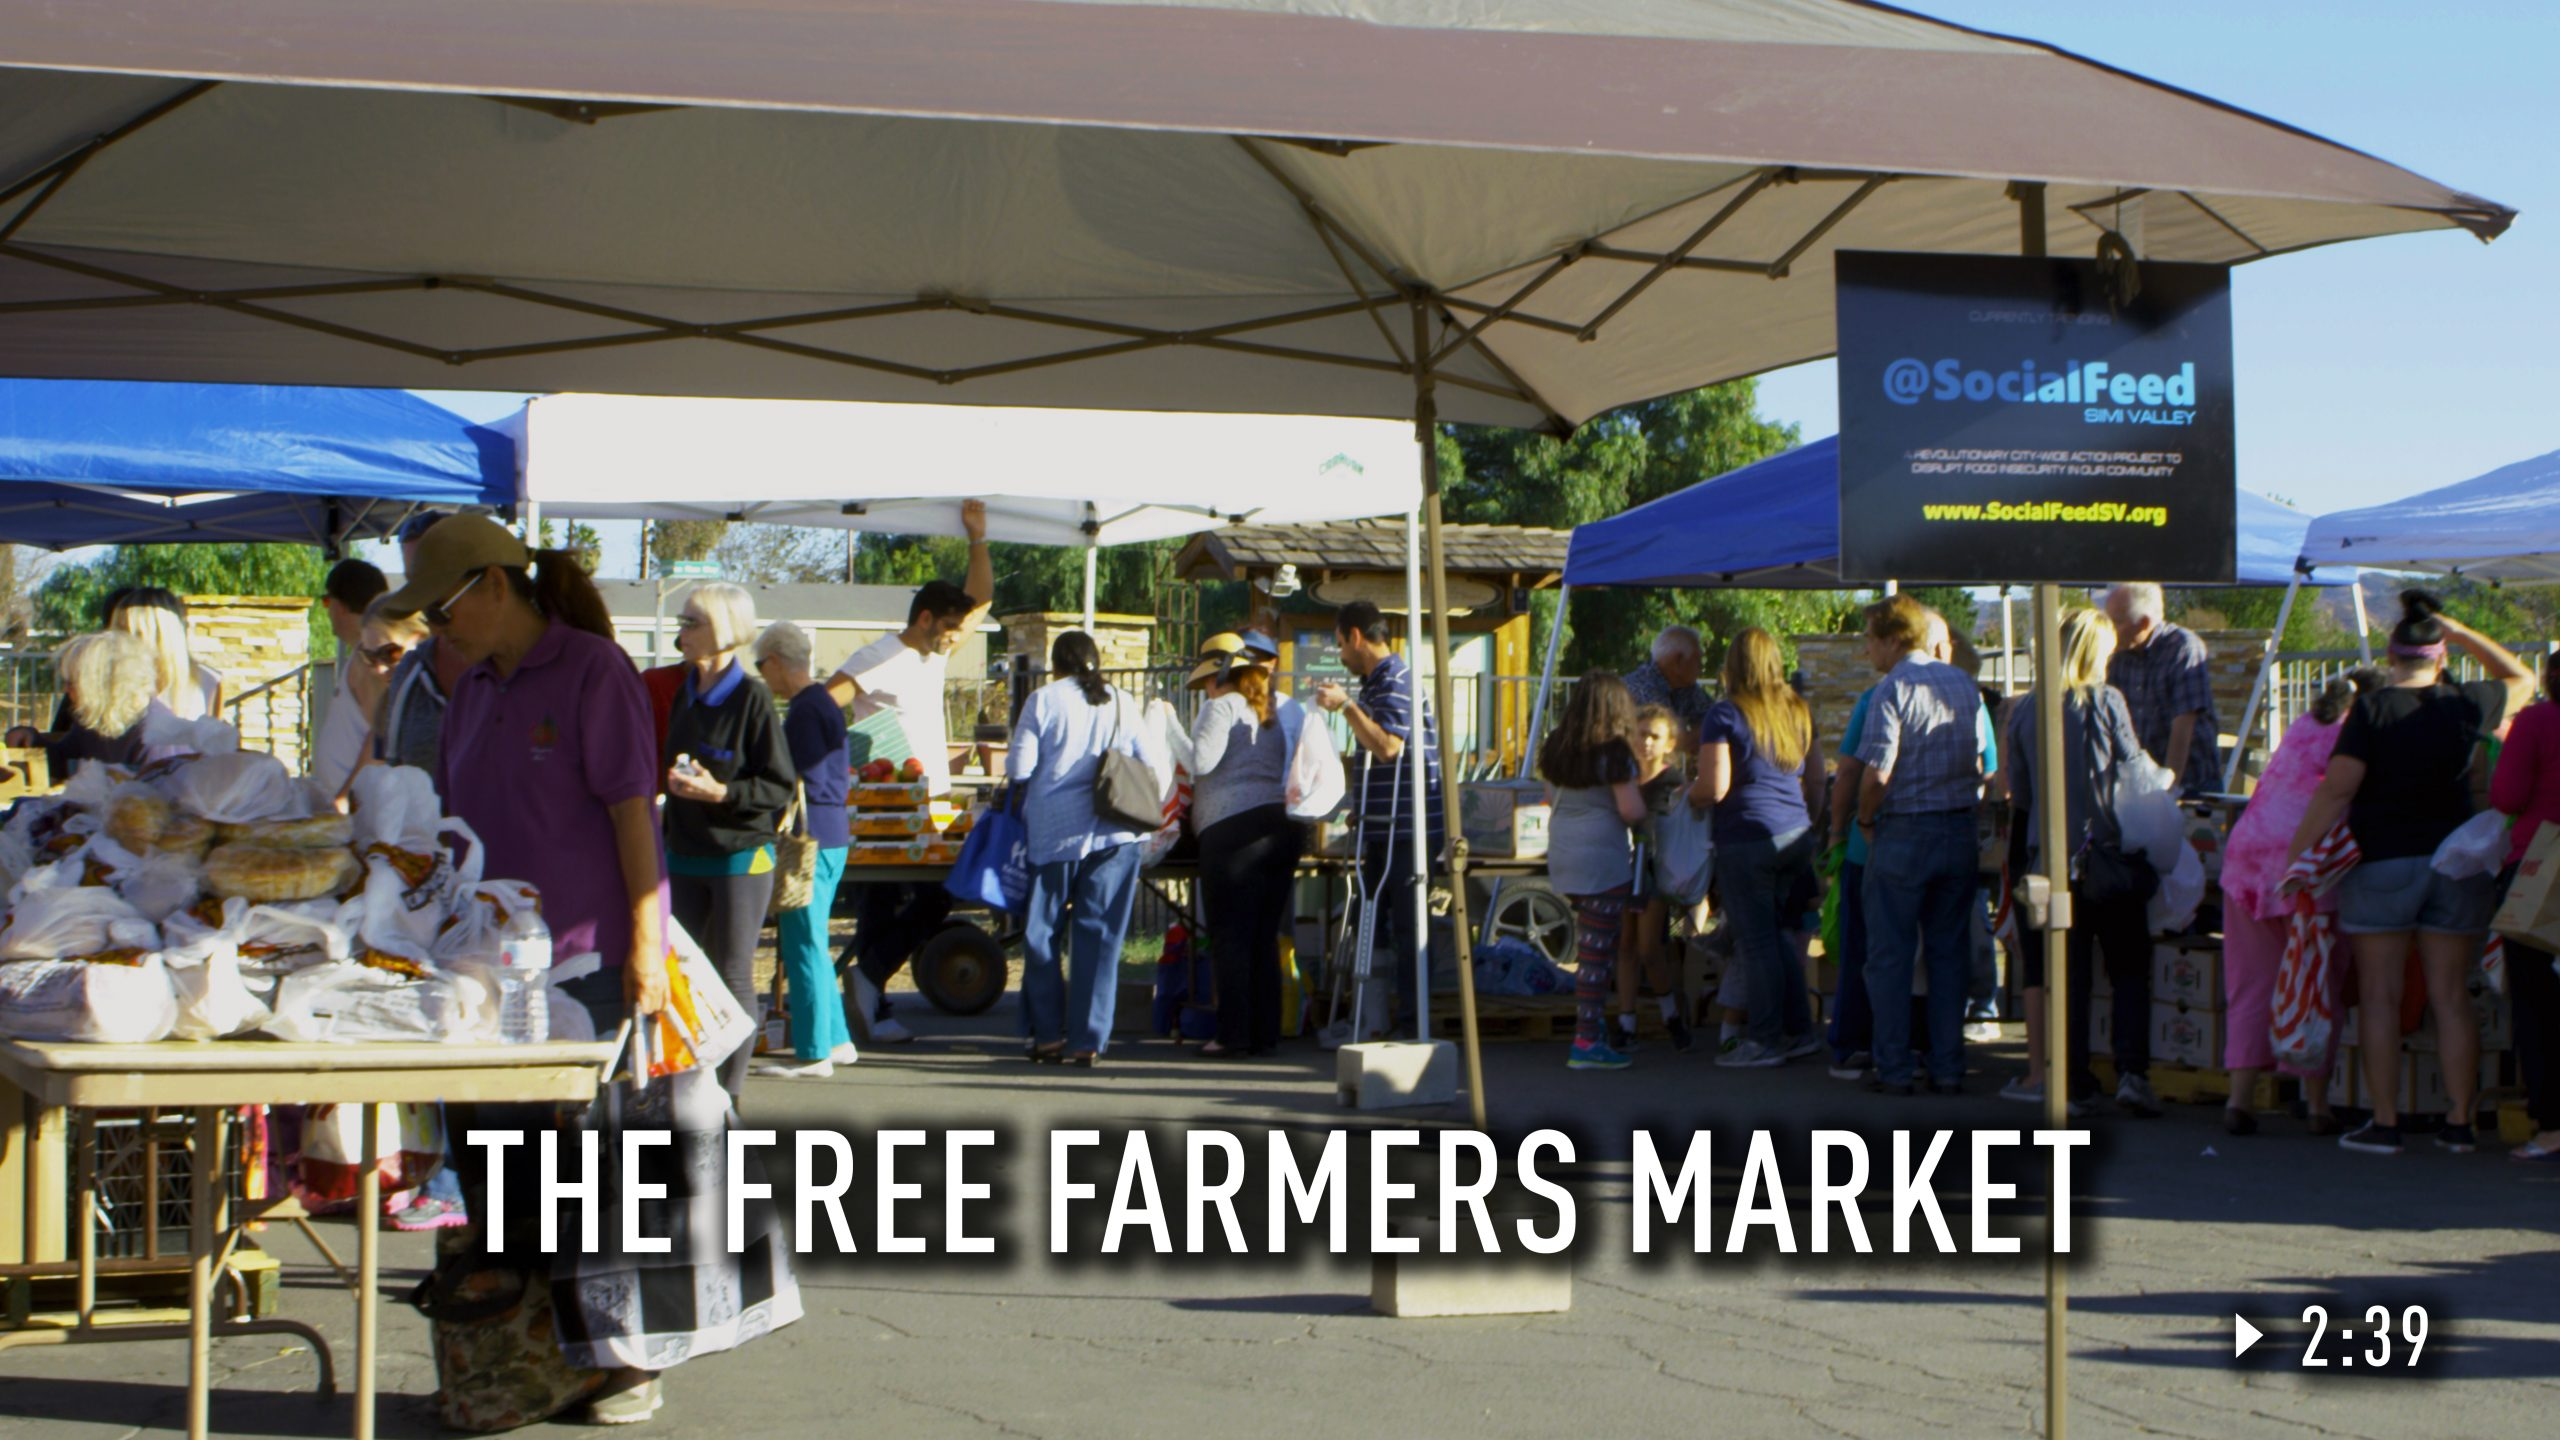 The Free Farmers Market